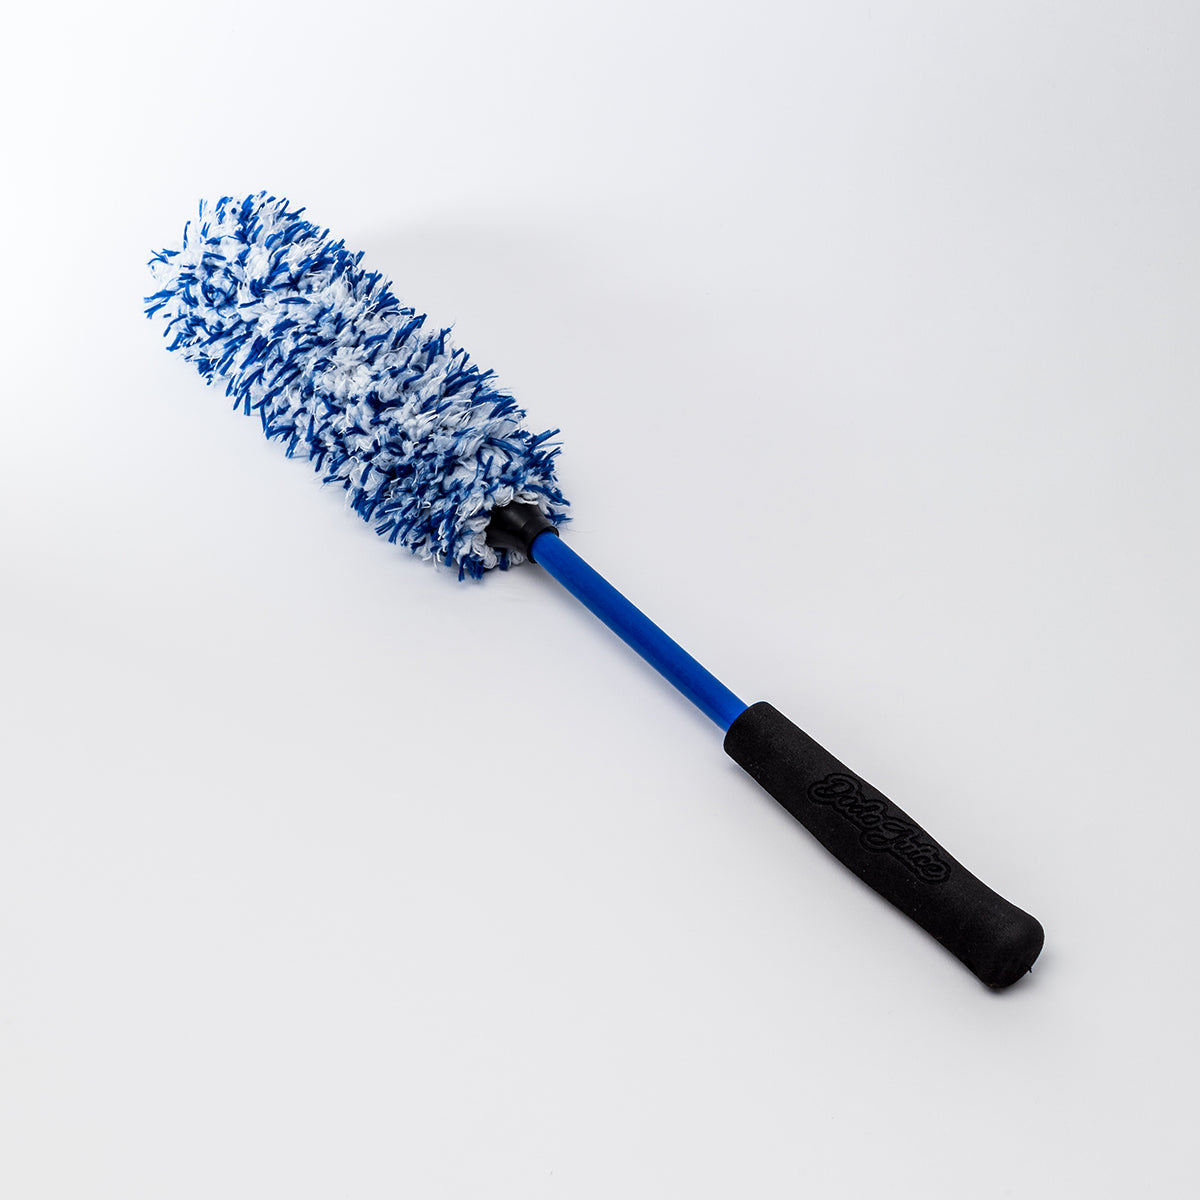 Barrel Brush - soft microfibre wheel cleaning brush - long handle for deeper cleaning